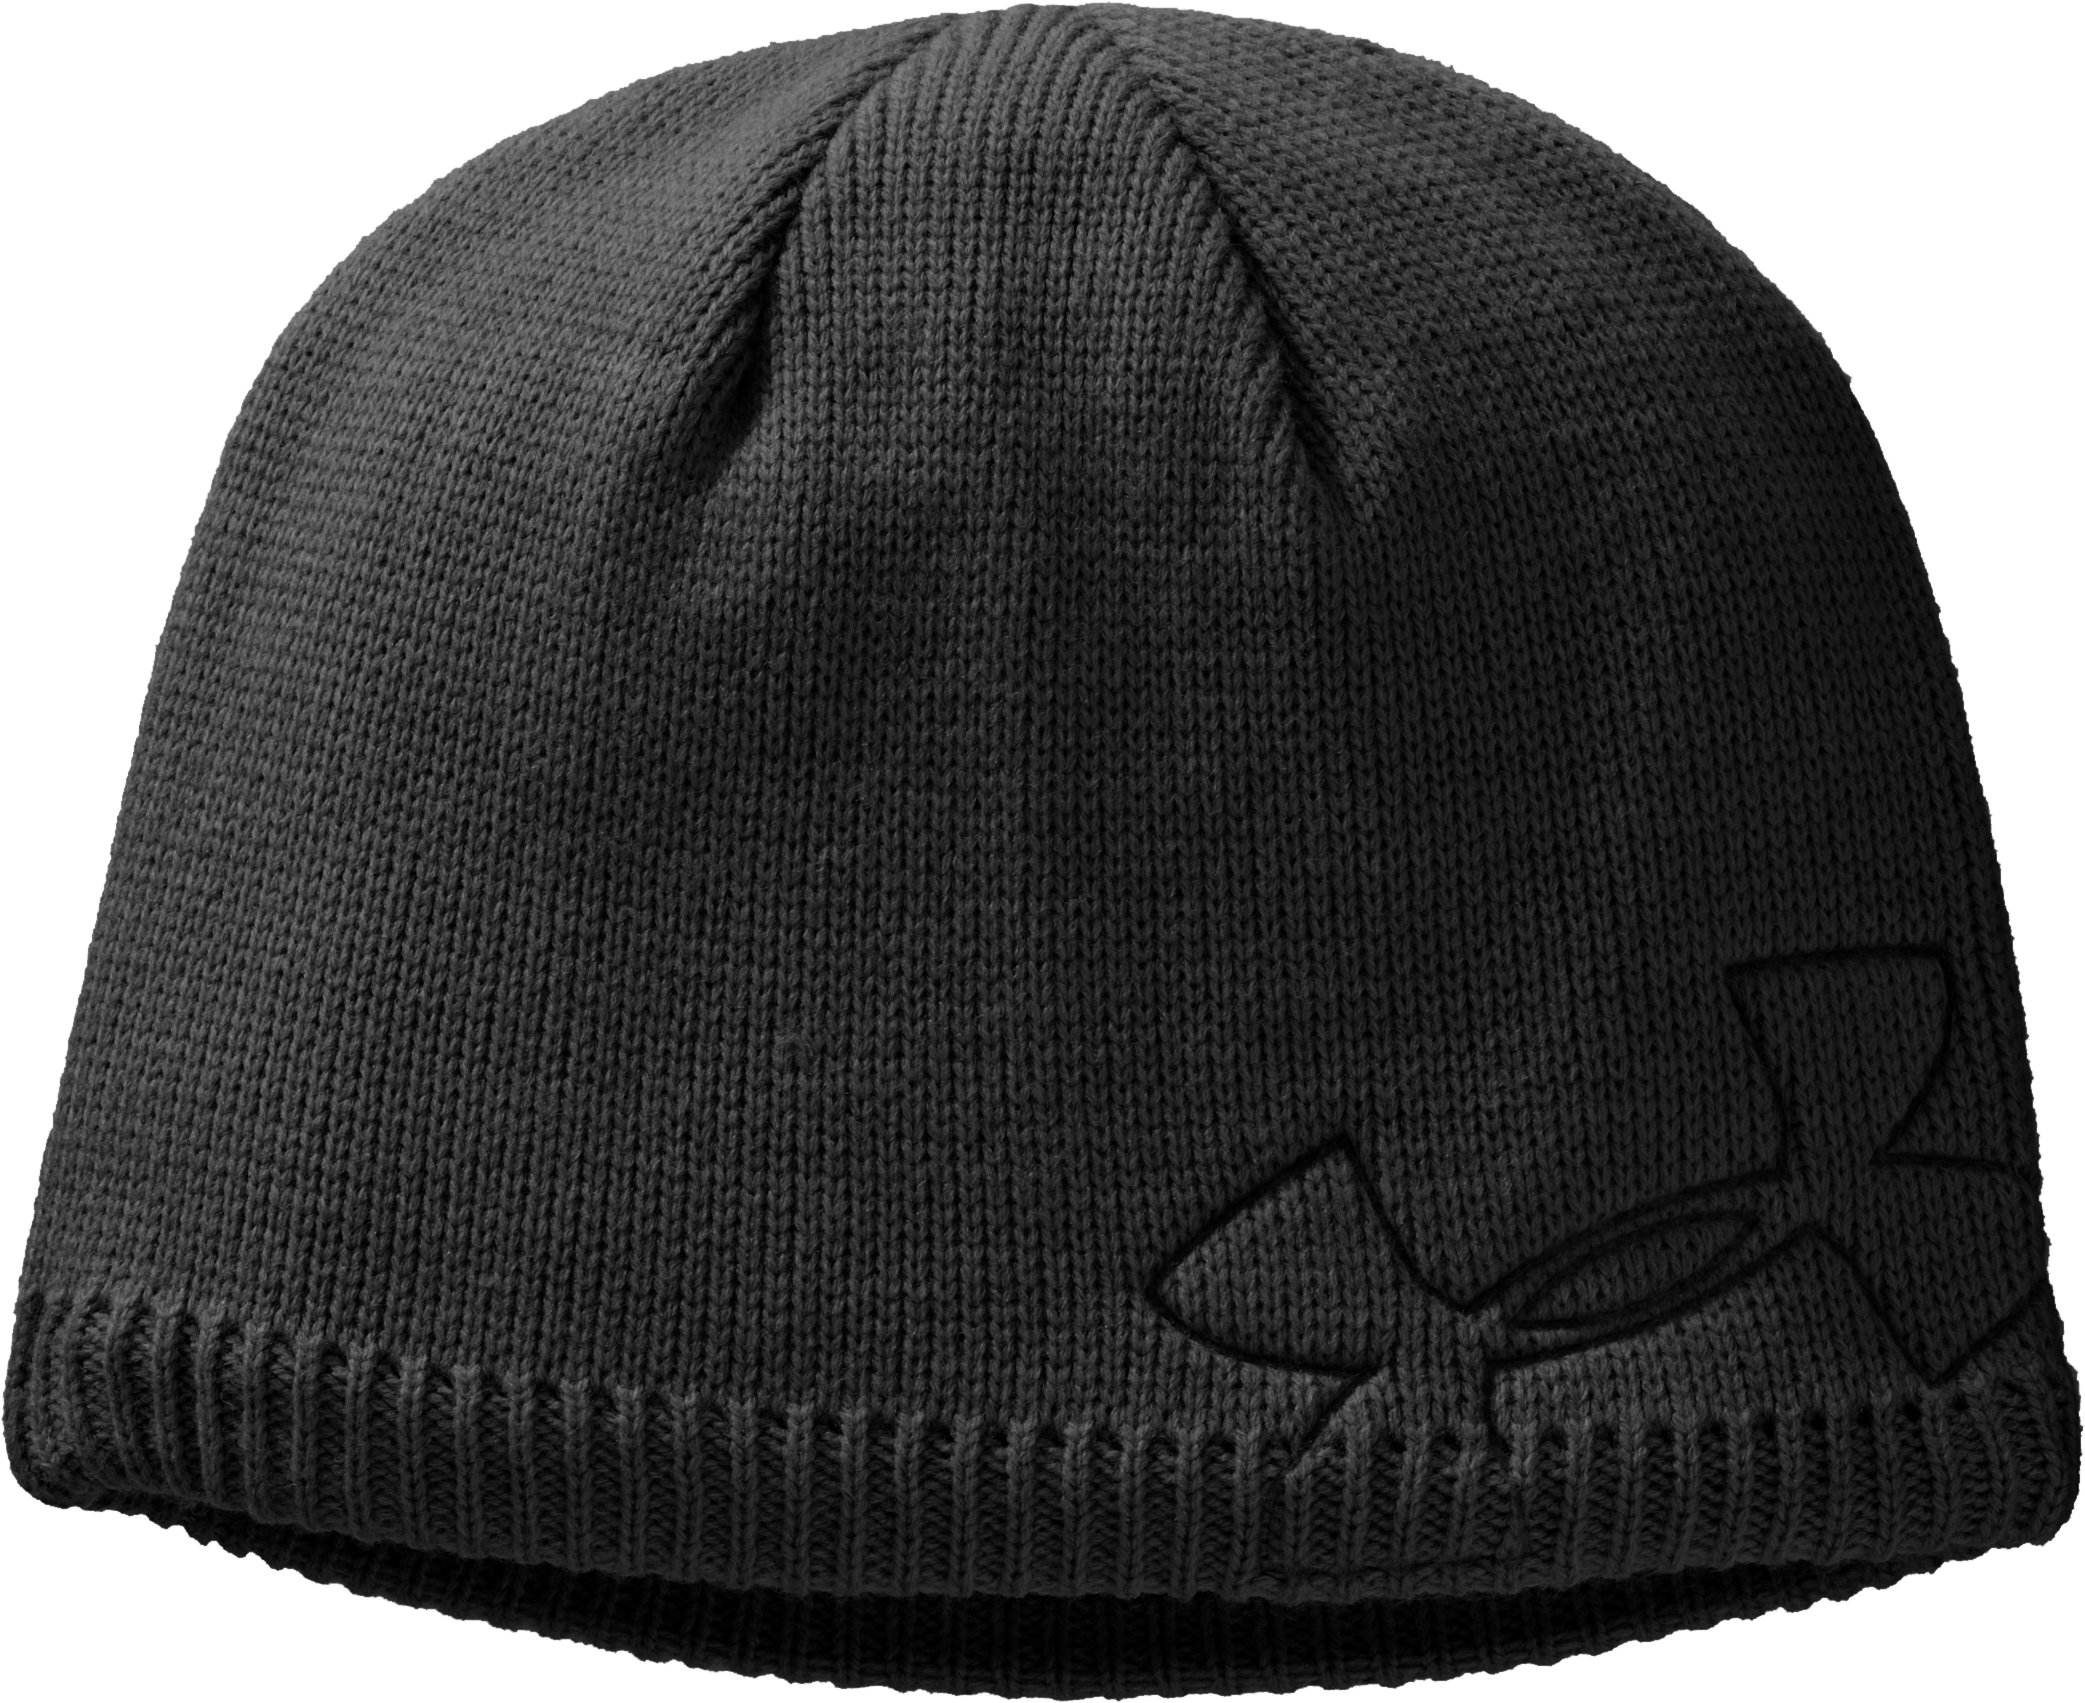 Men's Sonic Weld Beanie, Black